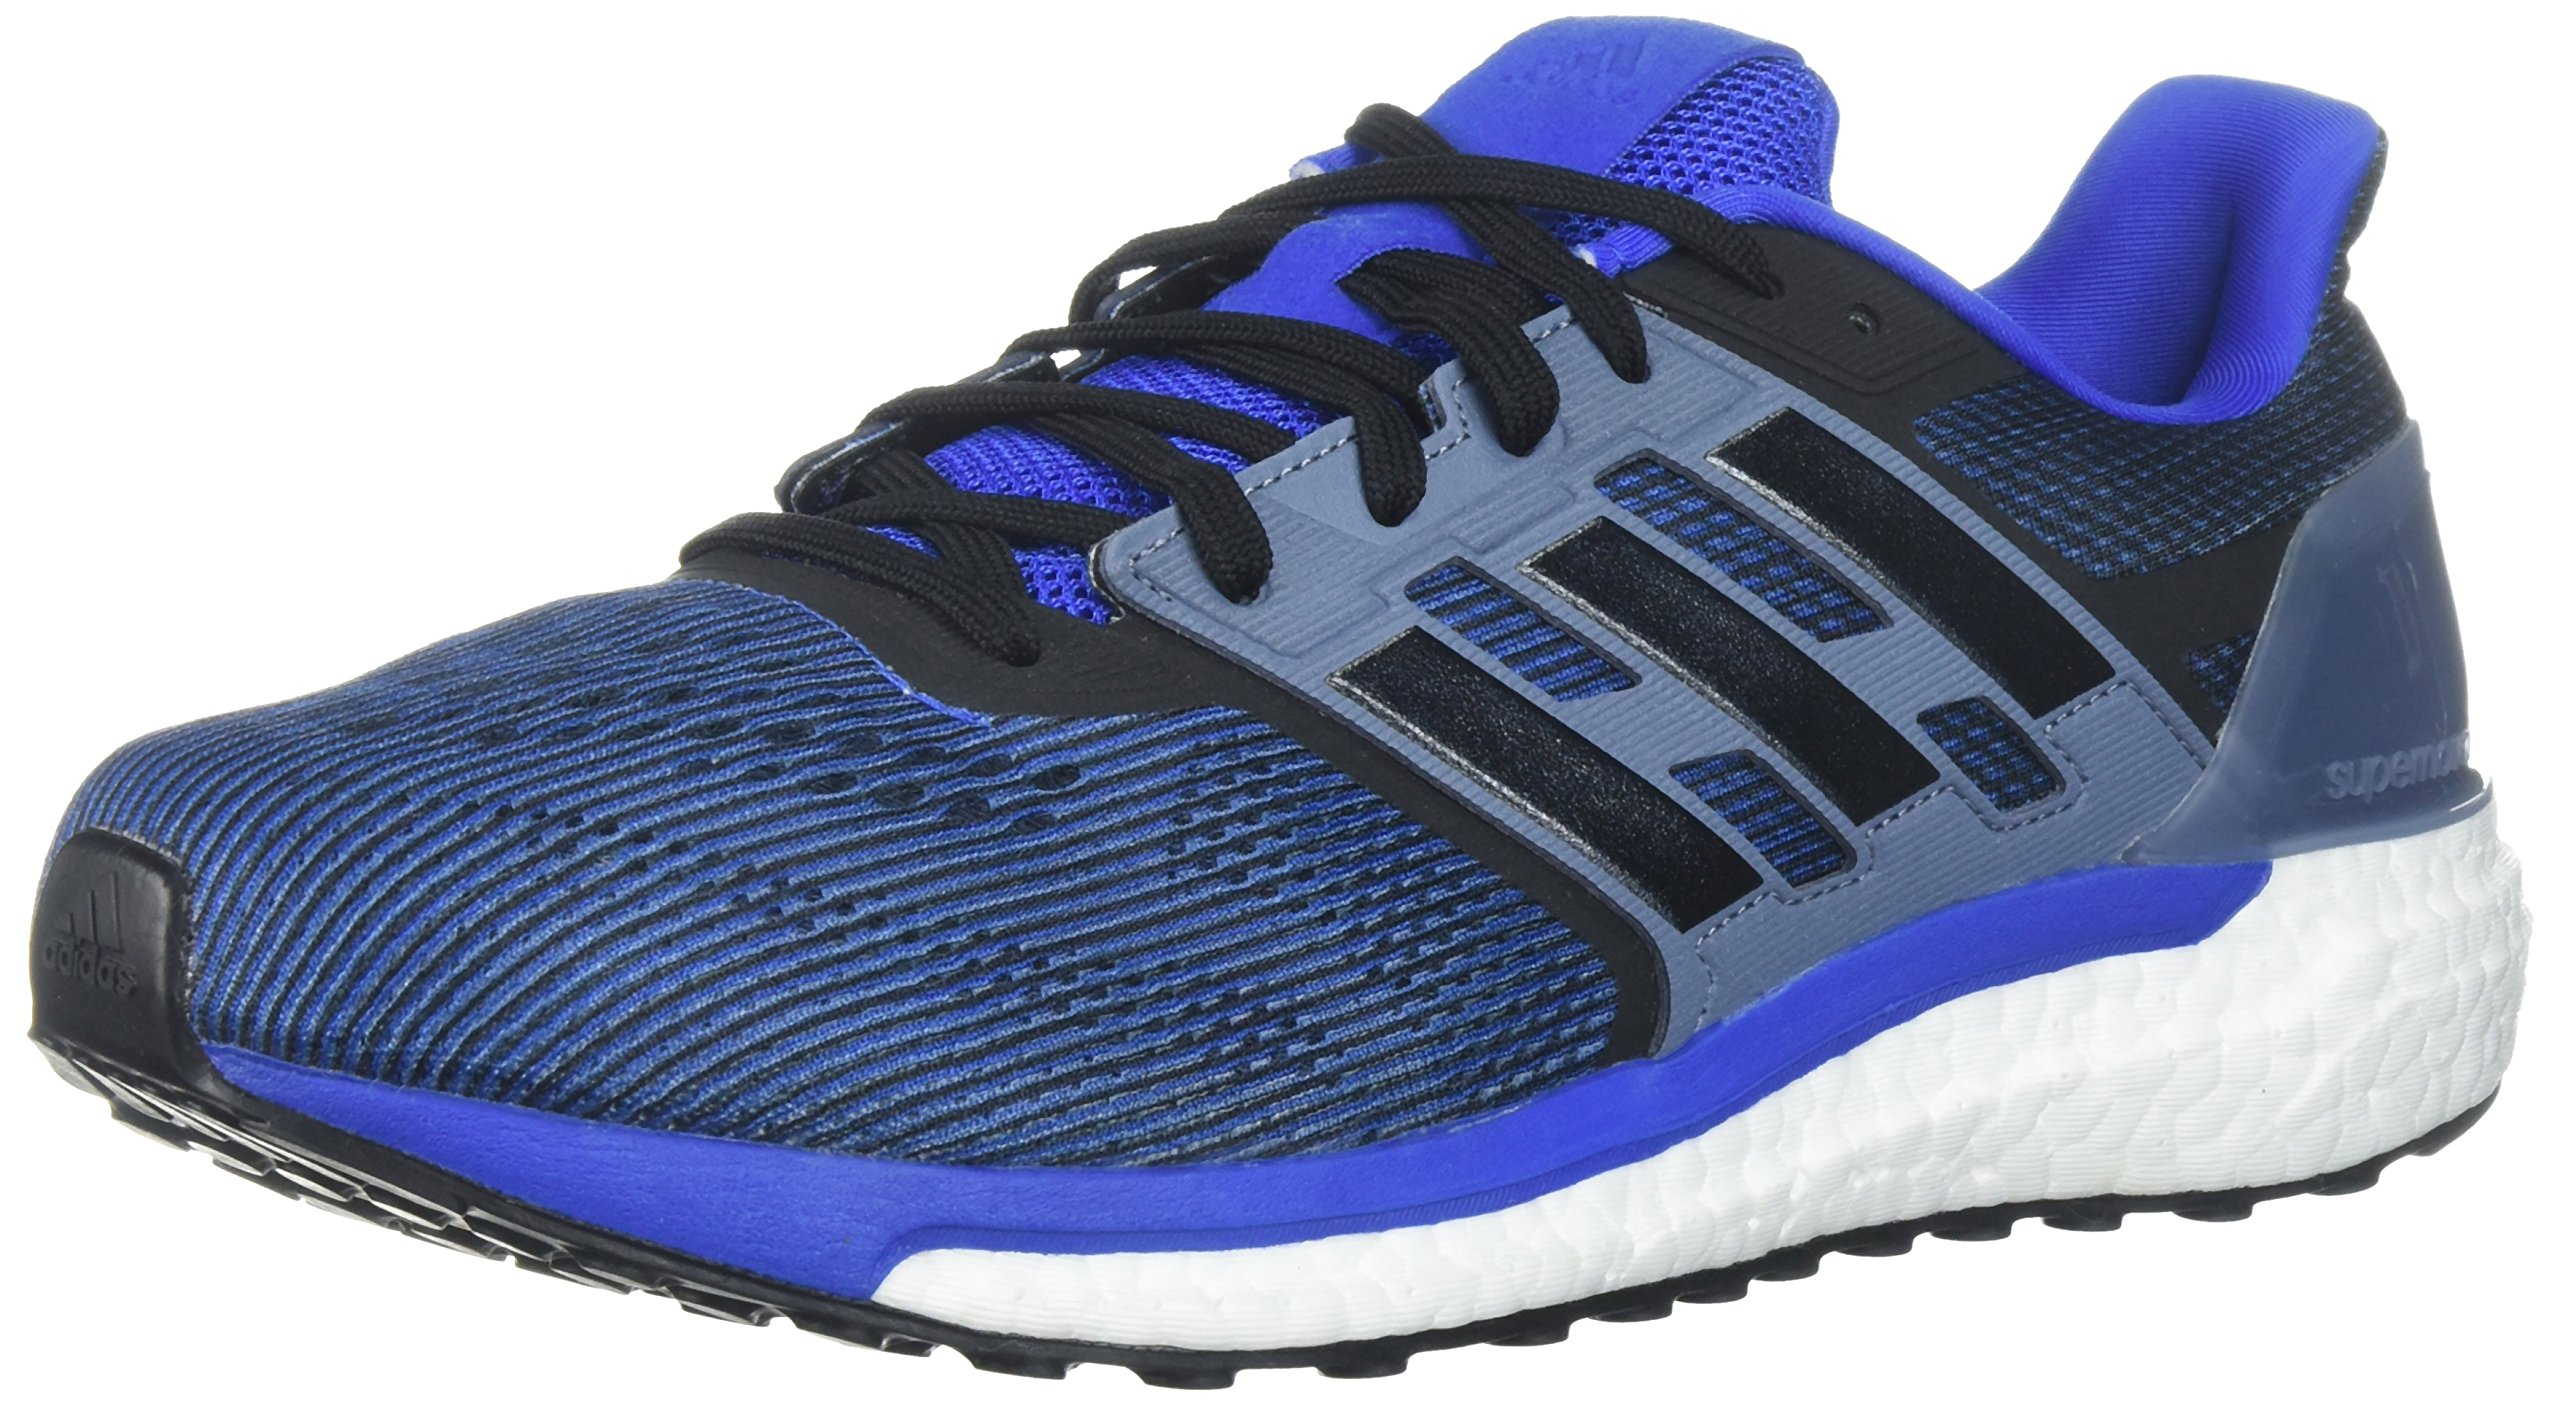 info for 3a140 f4f73 Galleon - Adidas Men s Supernova M Running Shoe, Hi-Res Red Core Black Raw  Steel, 10 M US